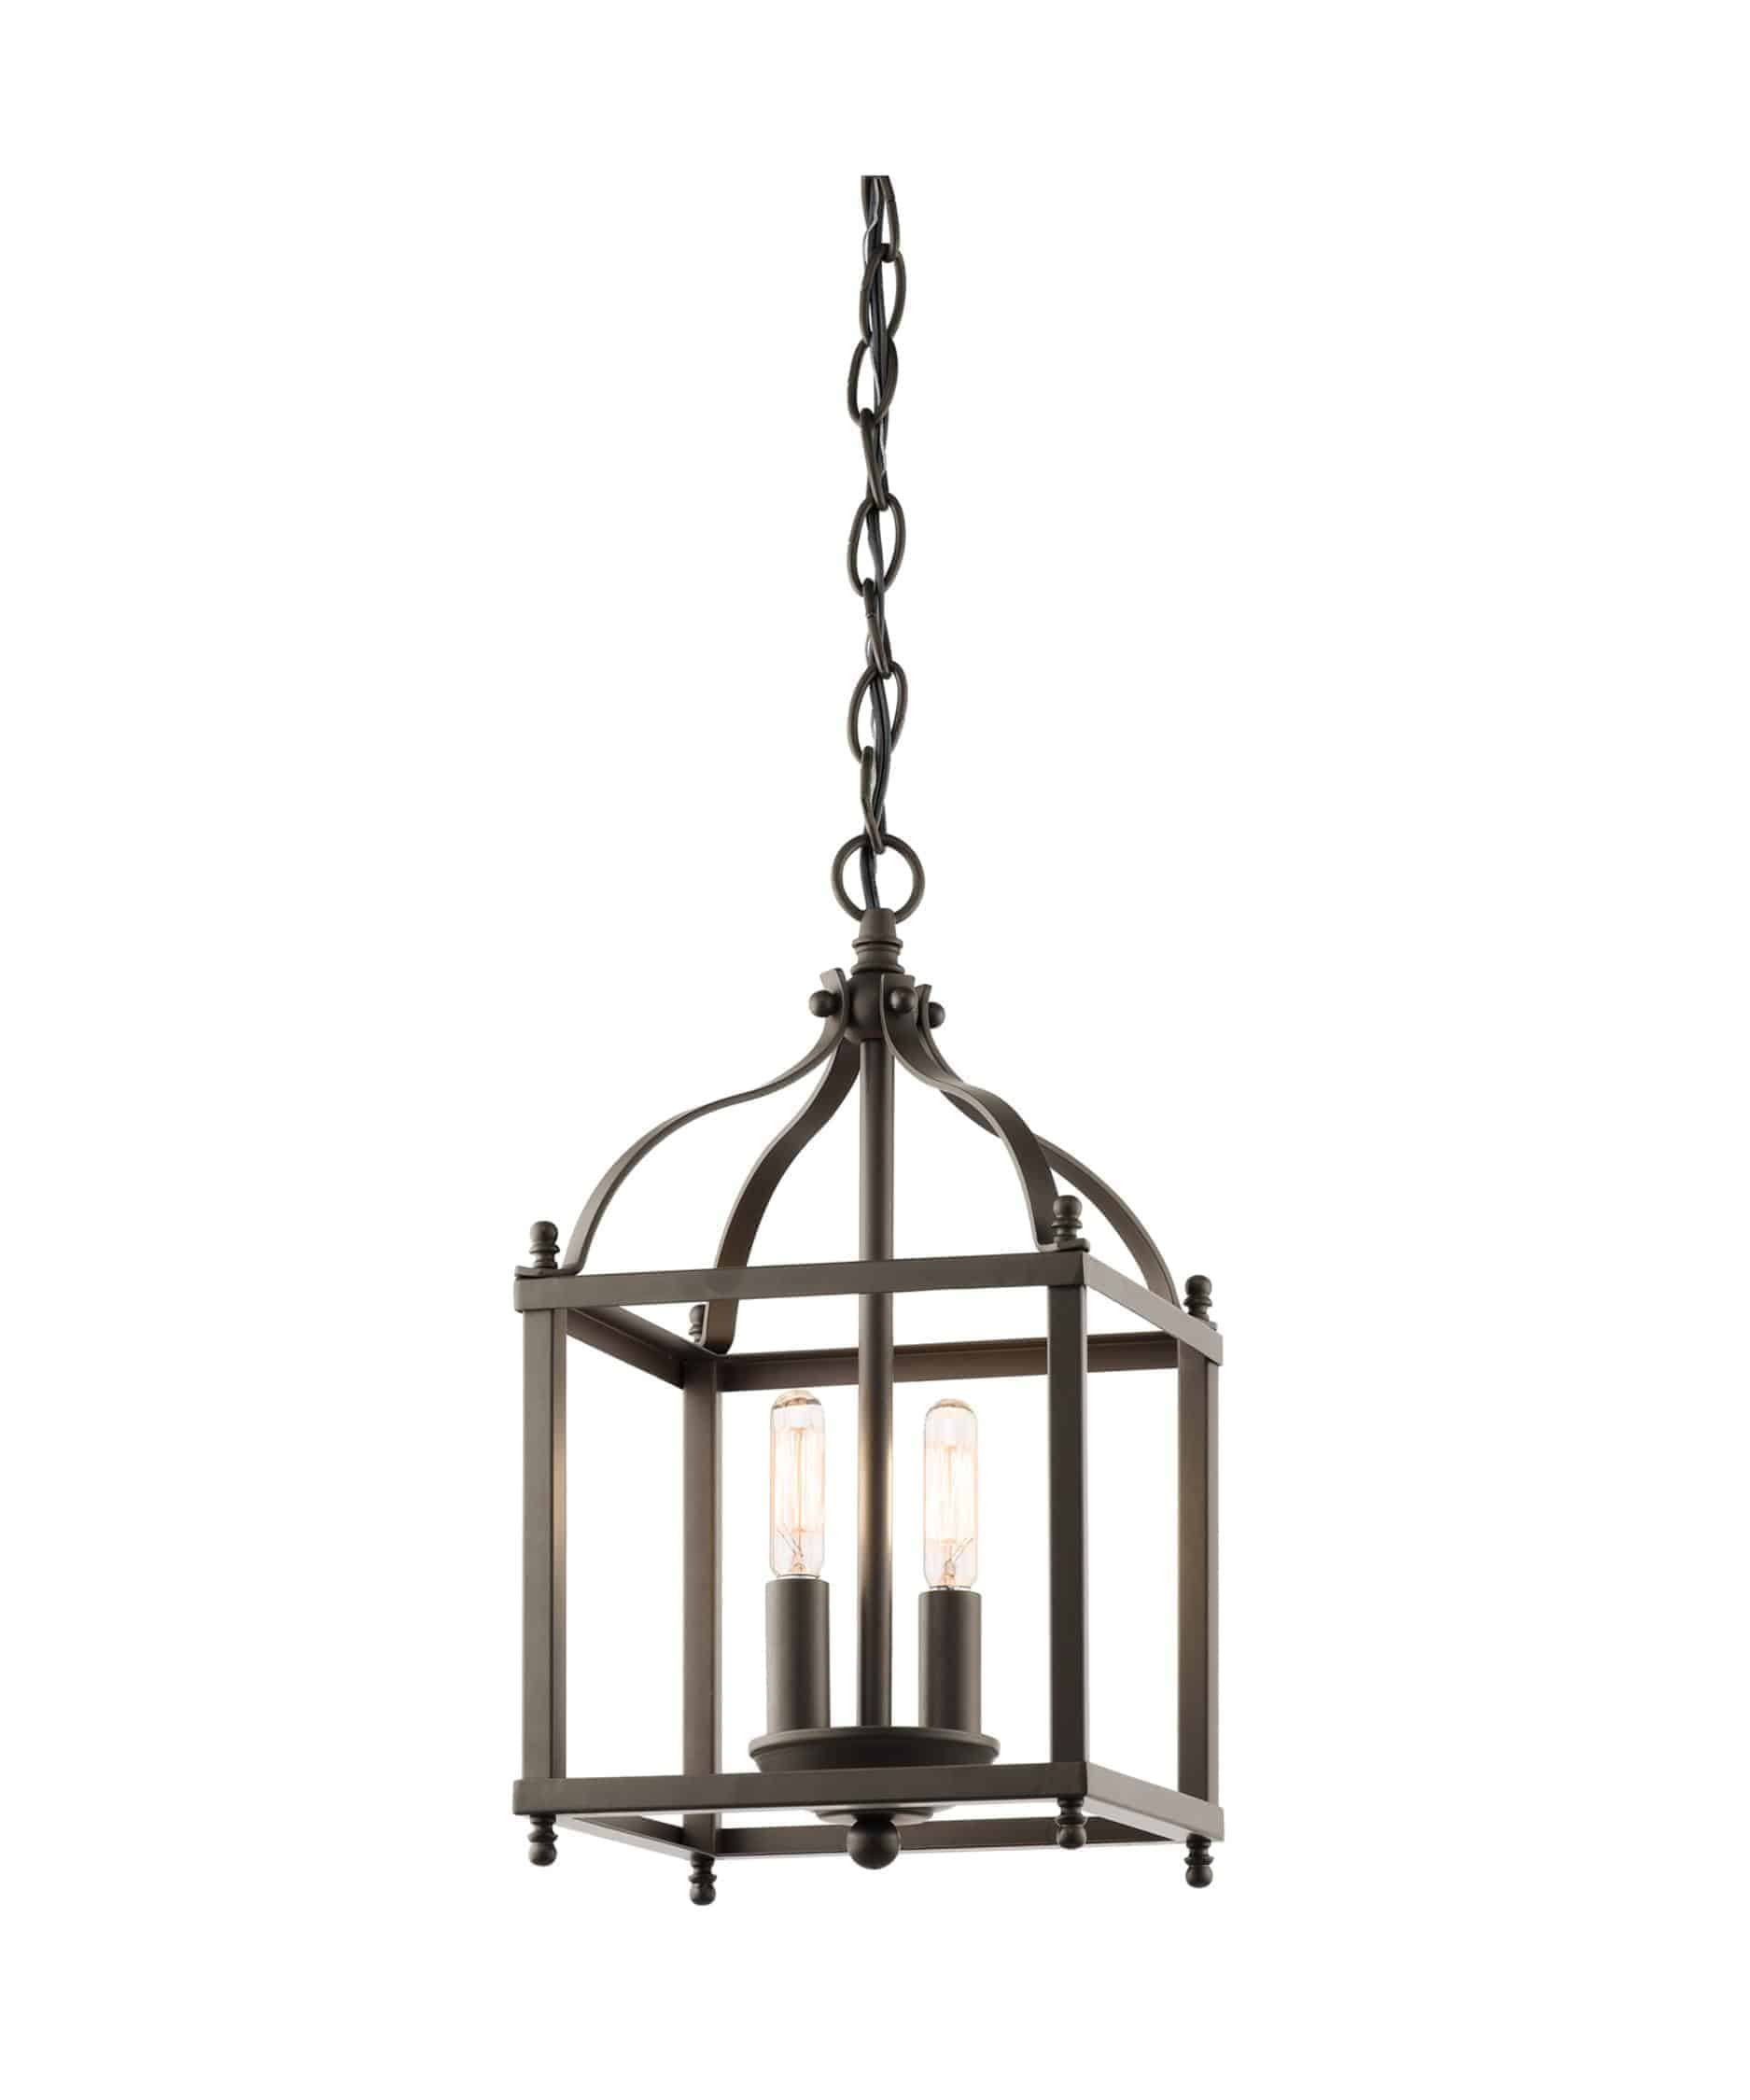 Kichler 42565 Larkin 8 Inch Wide 2 Light Mini Chandelier from 1 800 Lighting